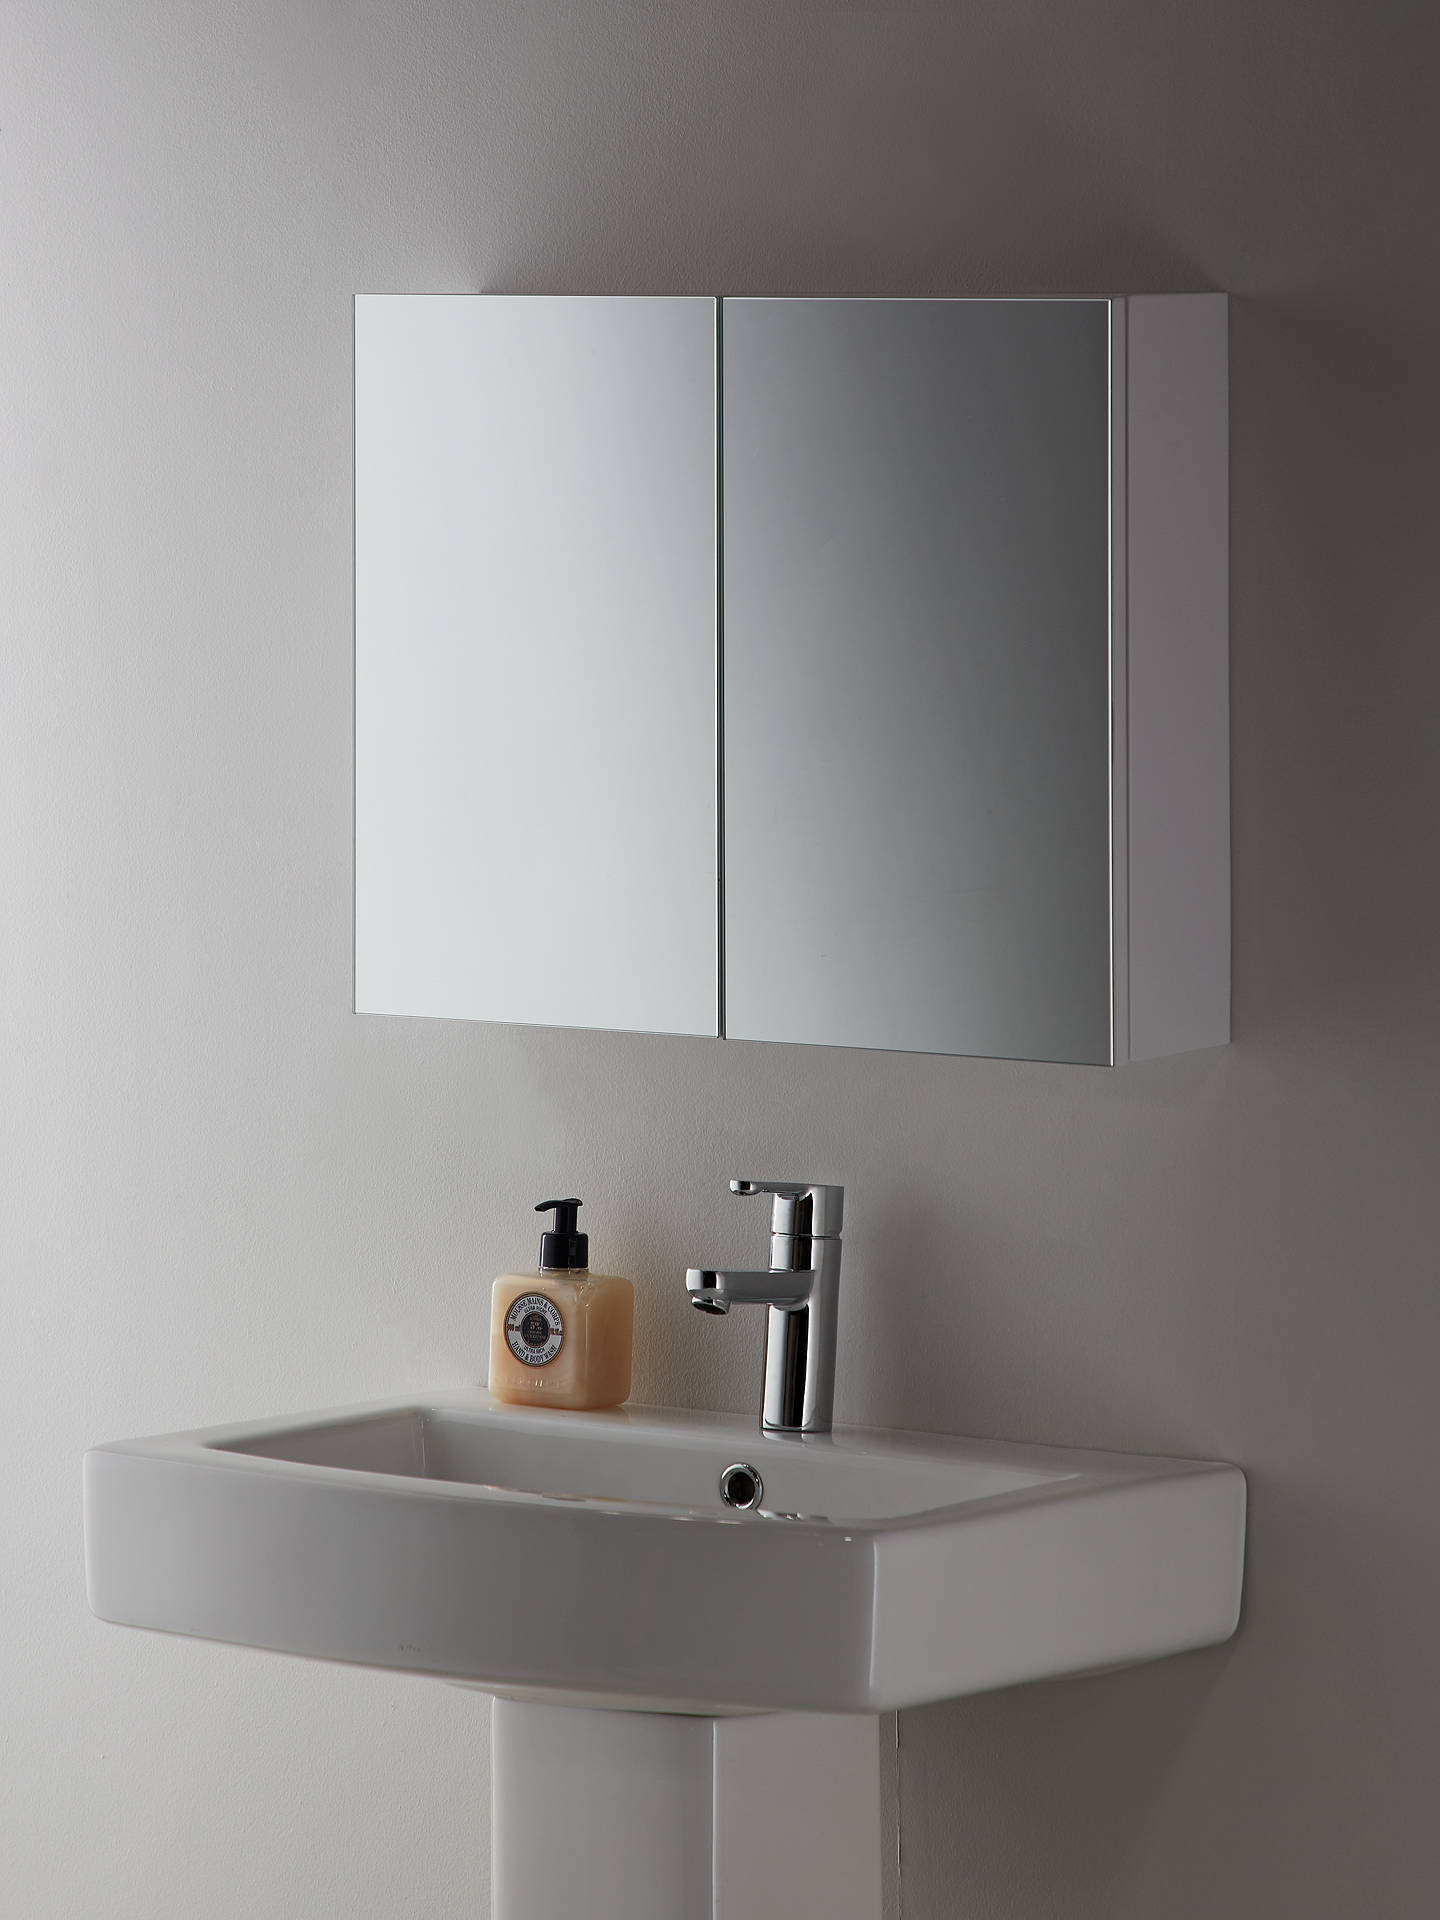 double mirrored bathroom cabinet lewis amp partners mirrored bathroom cabinet 15027